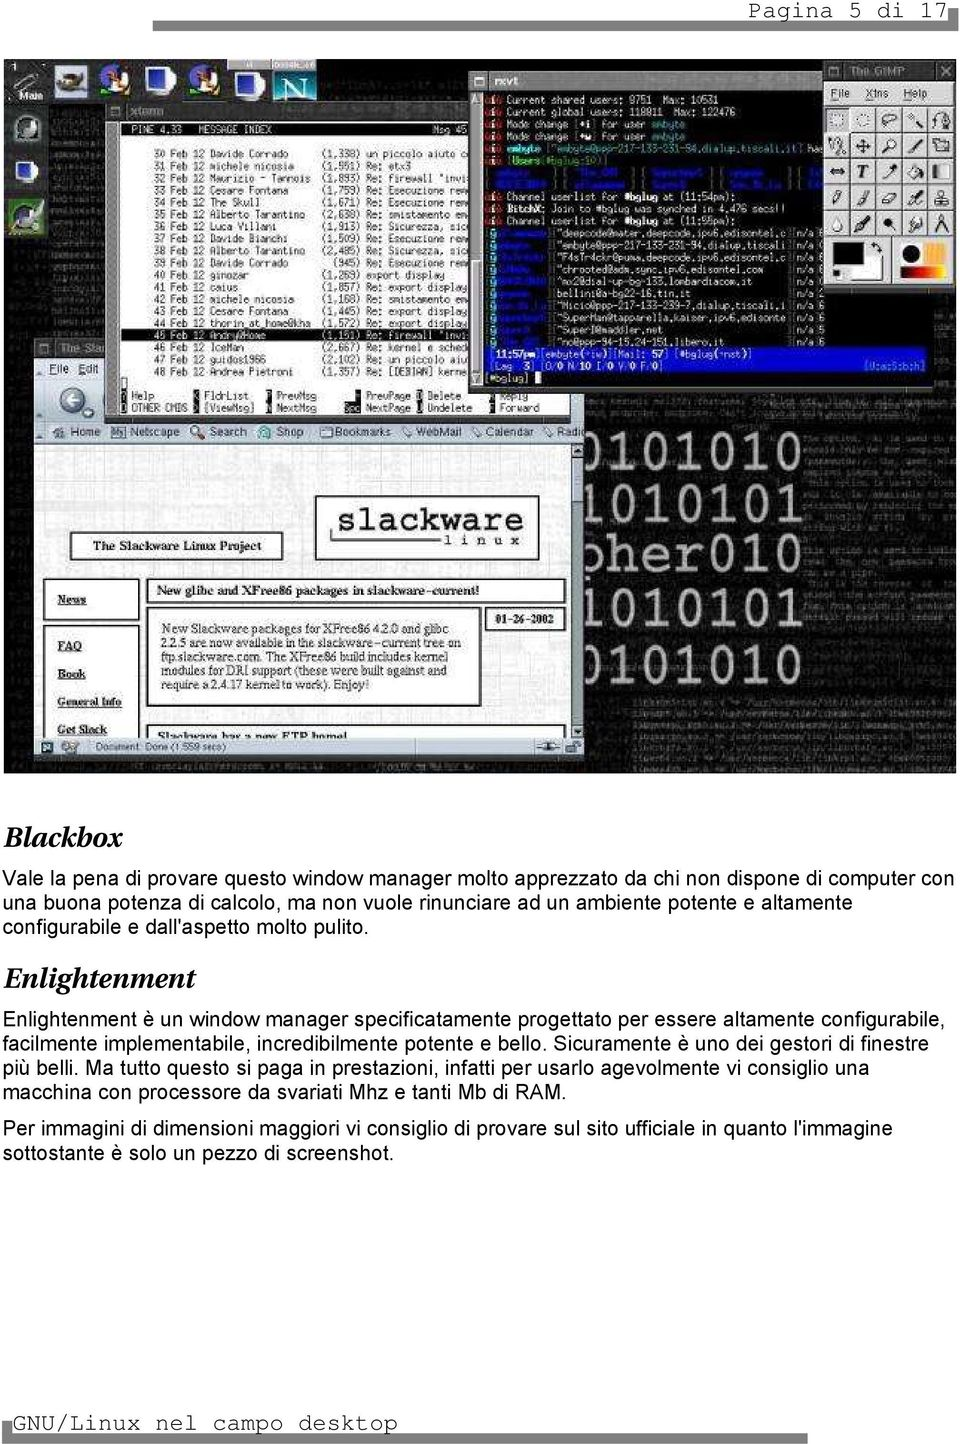 Enlightenment Enlightenment è un window manager specificatamente progettato per essere altamente configurabile, facilmente implementabile, incredibilmente potente e bello.